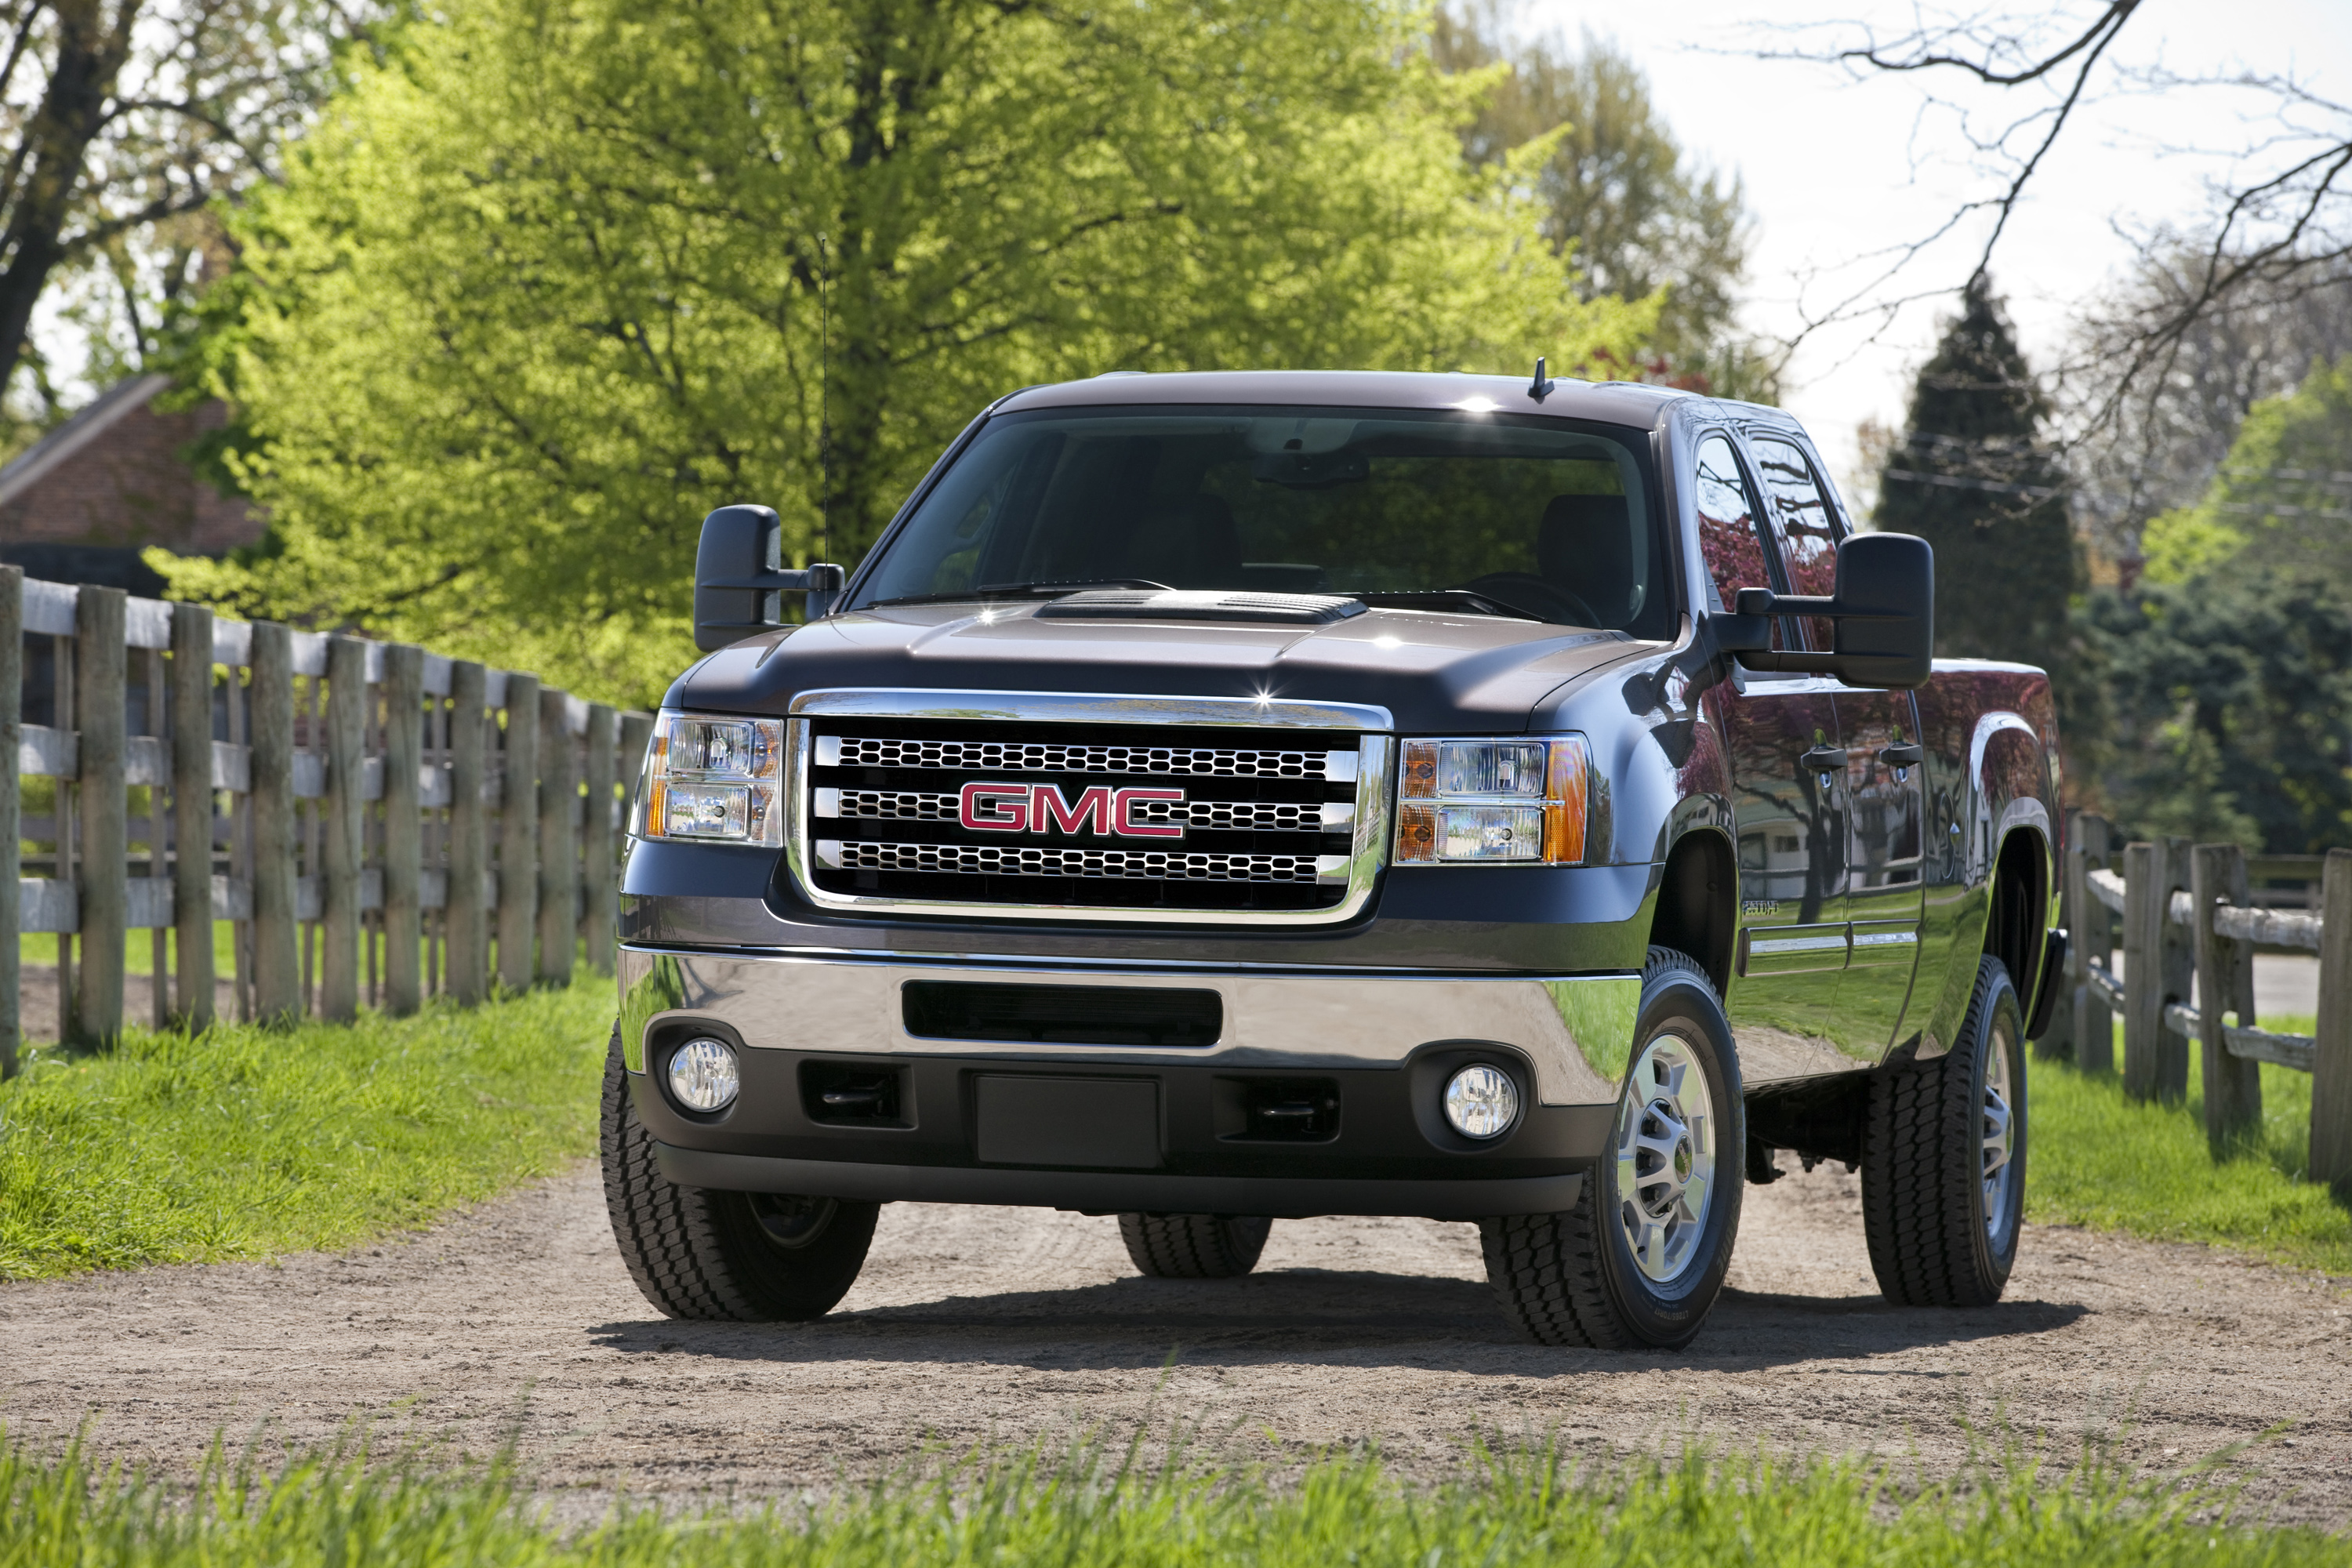 used allterrainx all will buyers pay for sierra gmc pickup x terrain anything